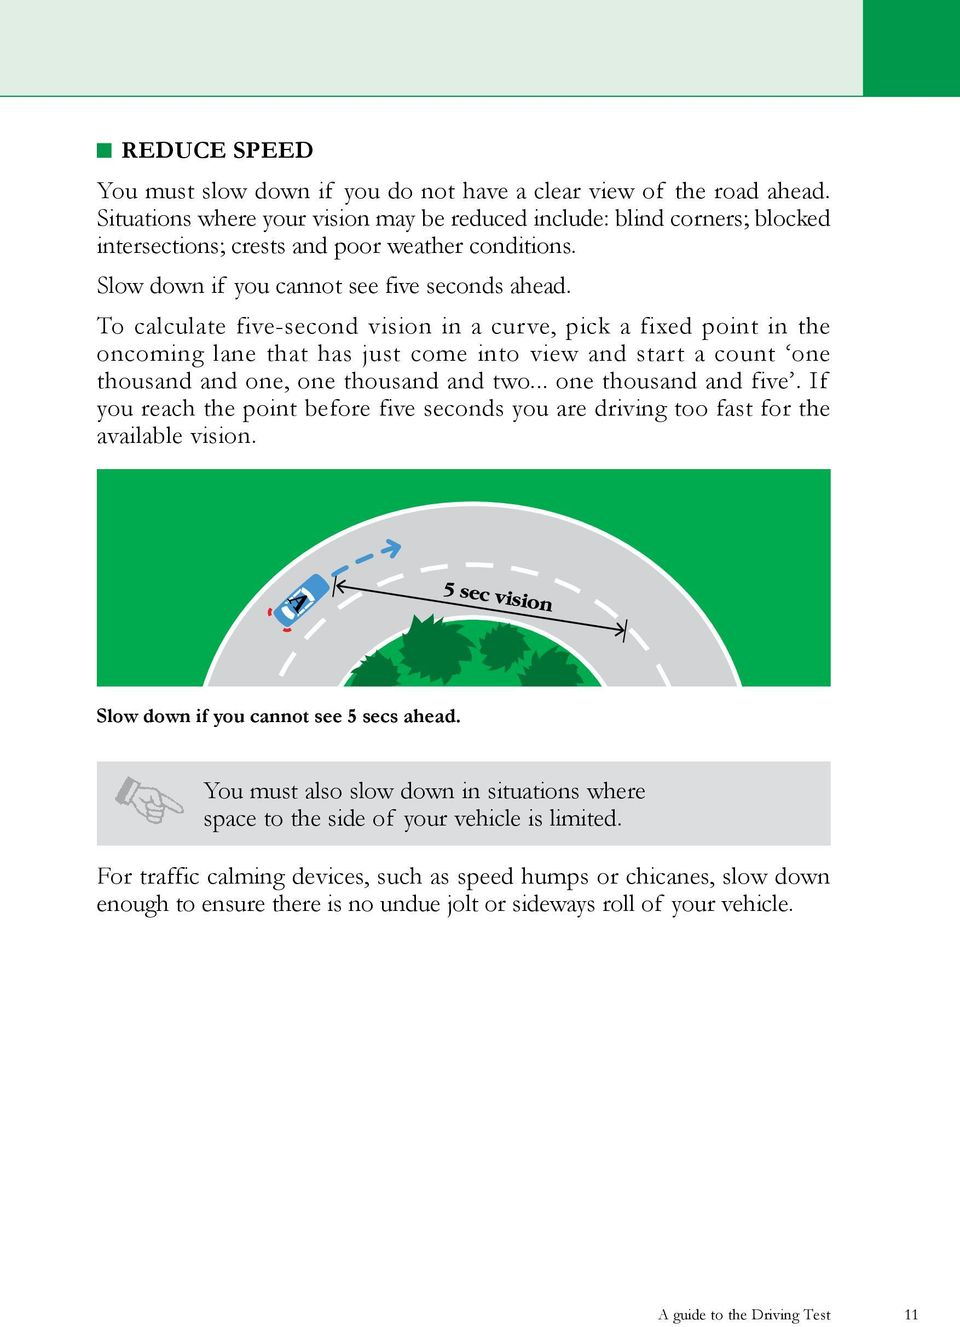 To calculate five-second vision in a curve, pick a fixed point in the oncoming lane that has just come into view and start a count one thousand and one, one thousand and two... one thousand and five.